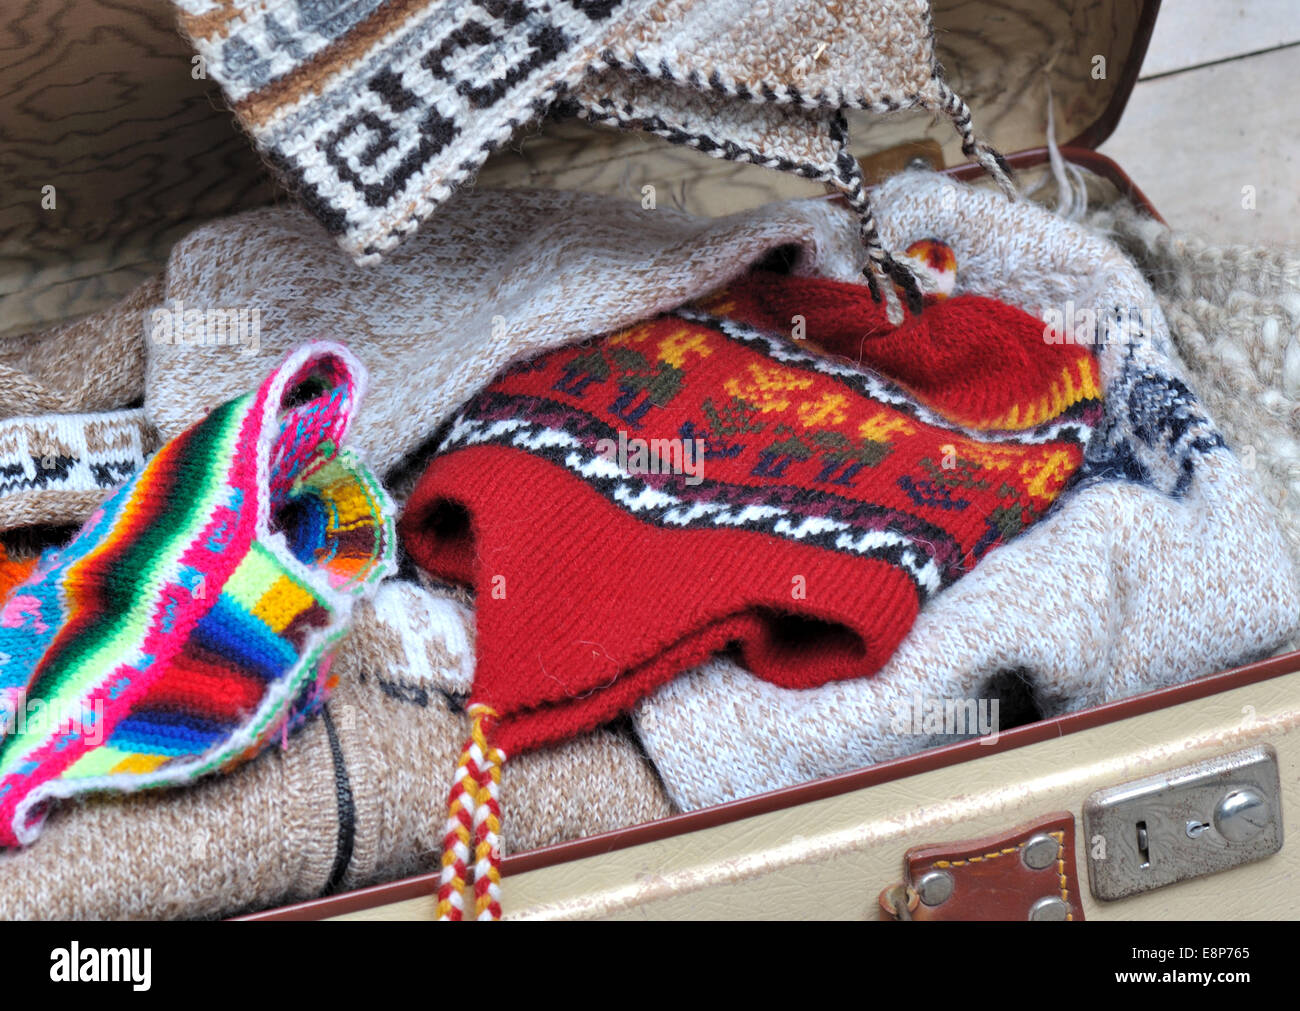 ea219f9627a small open suitcase full of warm clothes Stock Photo  74247325 - Alamy